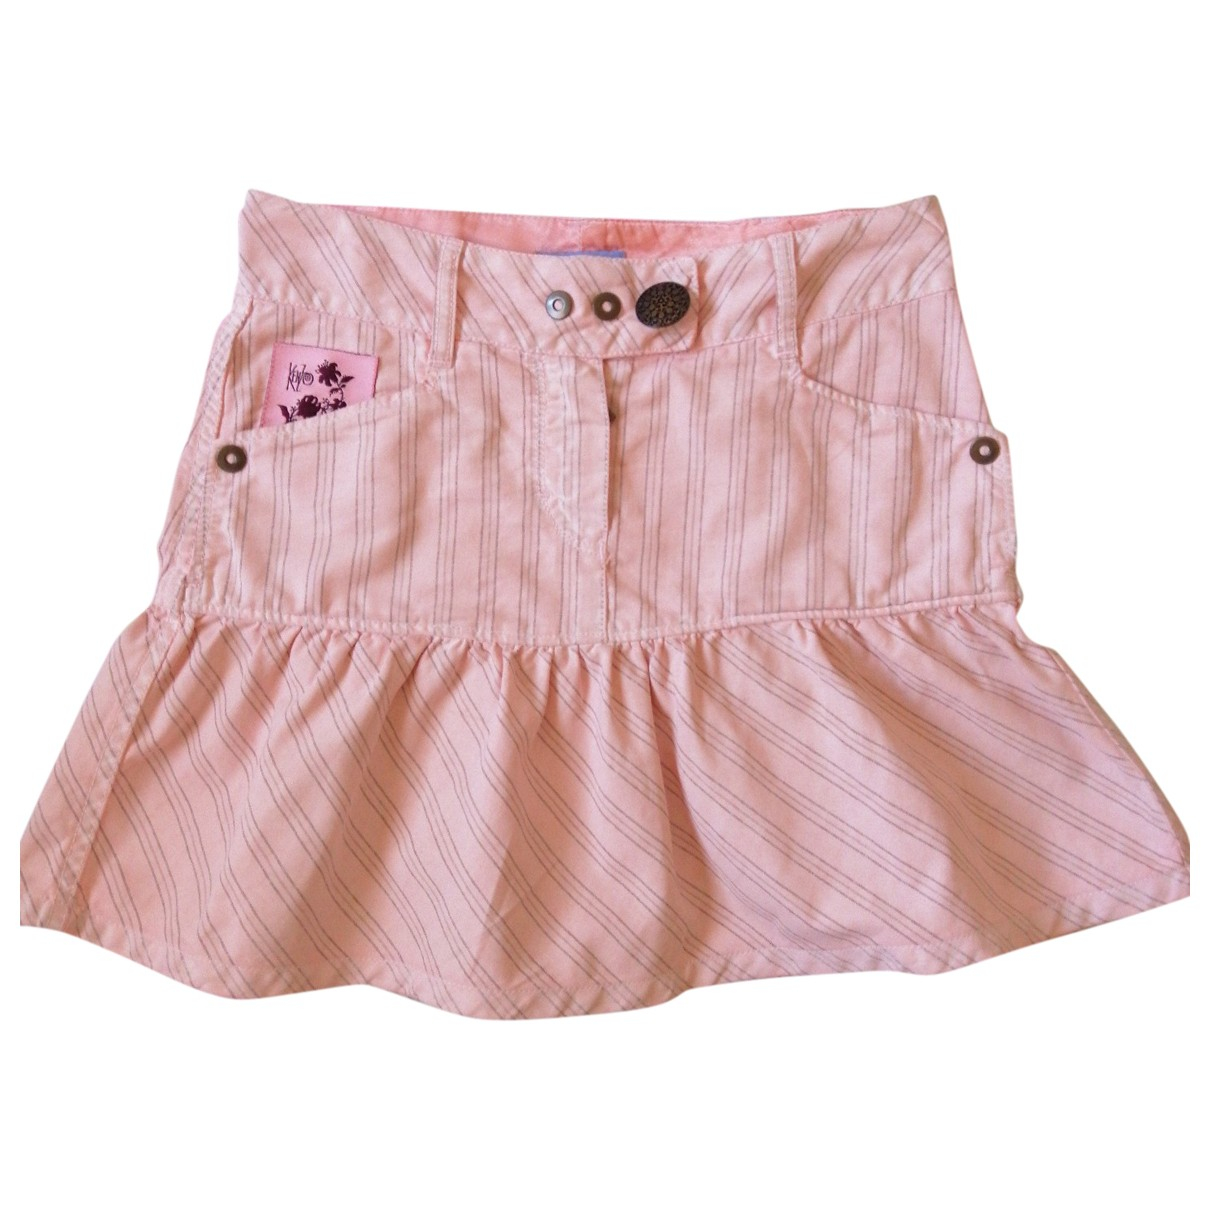 Kenzo \N Pink Cotton skirt for Kids 12 years - XS FR